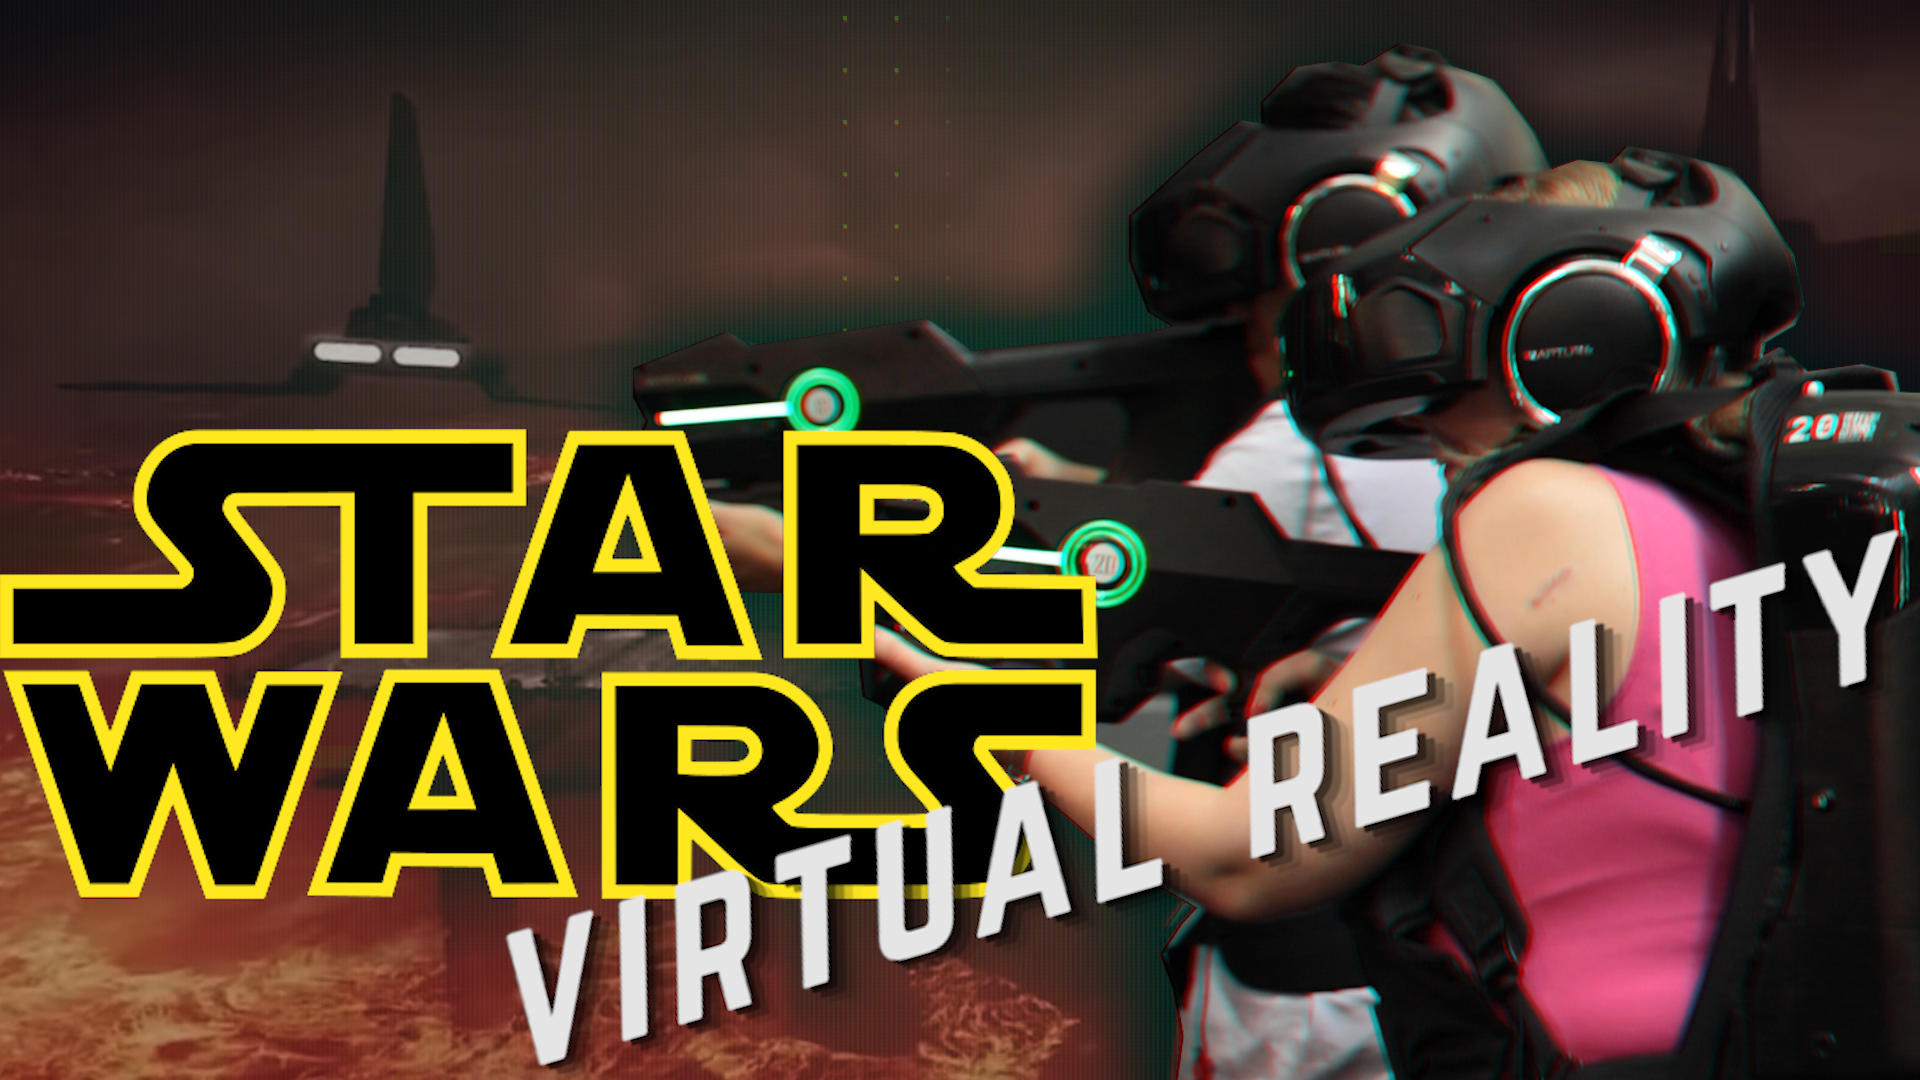 Video: Experiencing Star Wars: Secrets of the Empire at The VOID VR in NYC